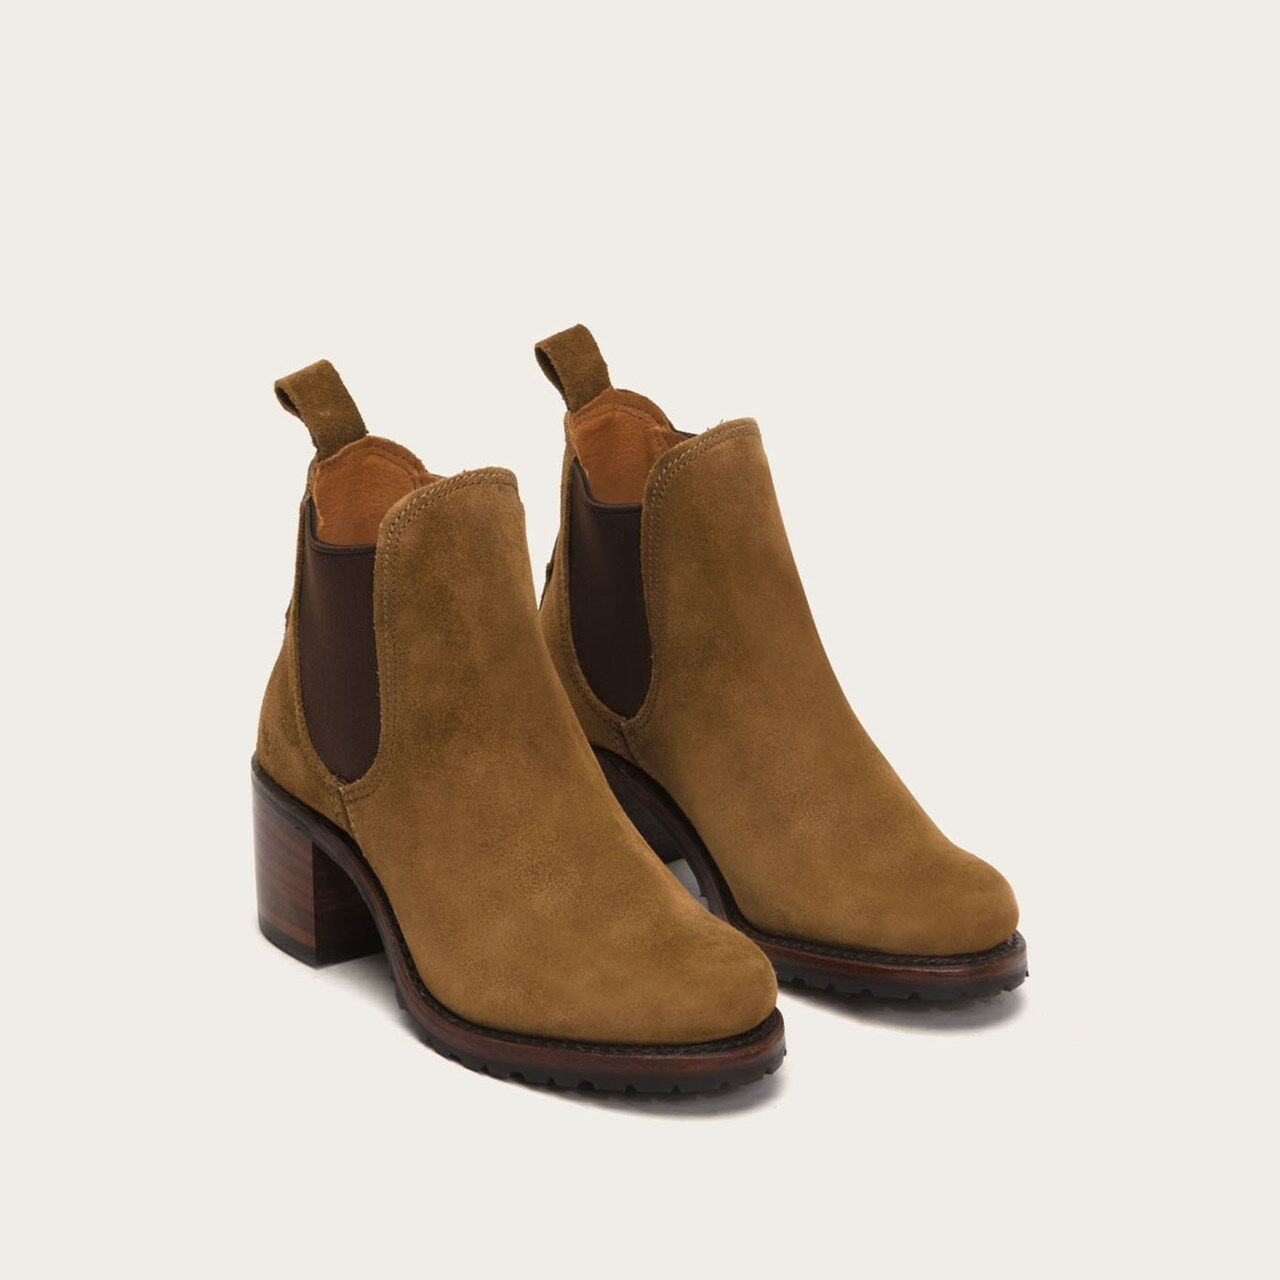 Frye Sabrina Chelsea Boot Chestnut Brown Suede Leather 77037